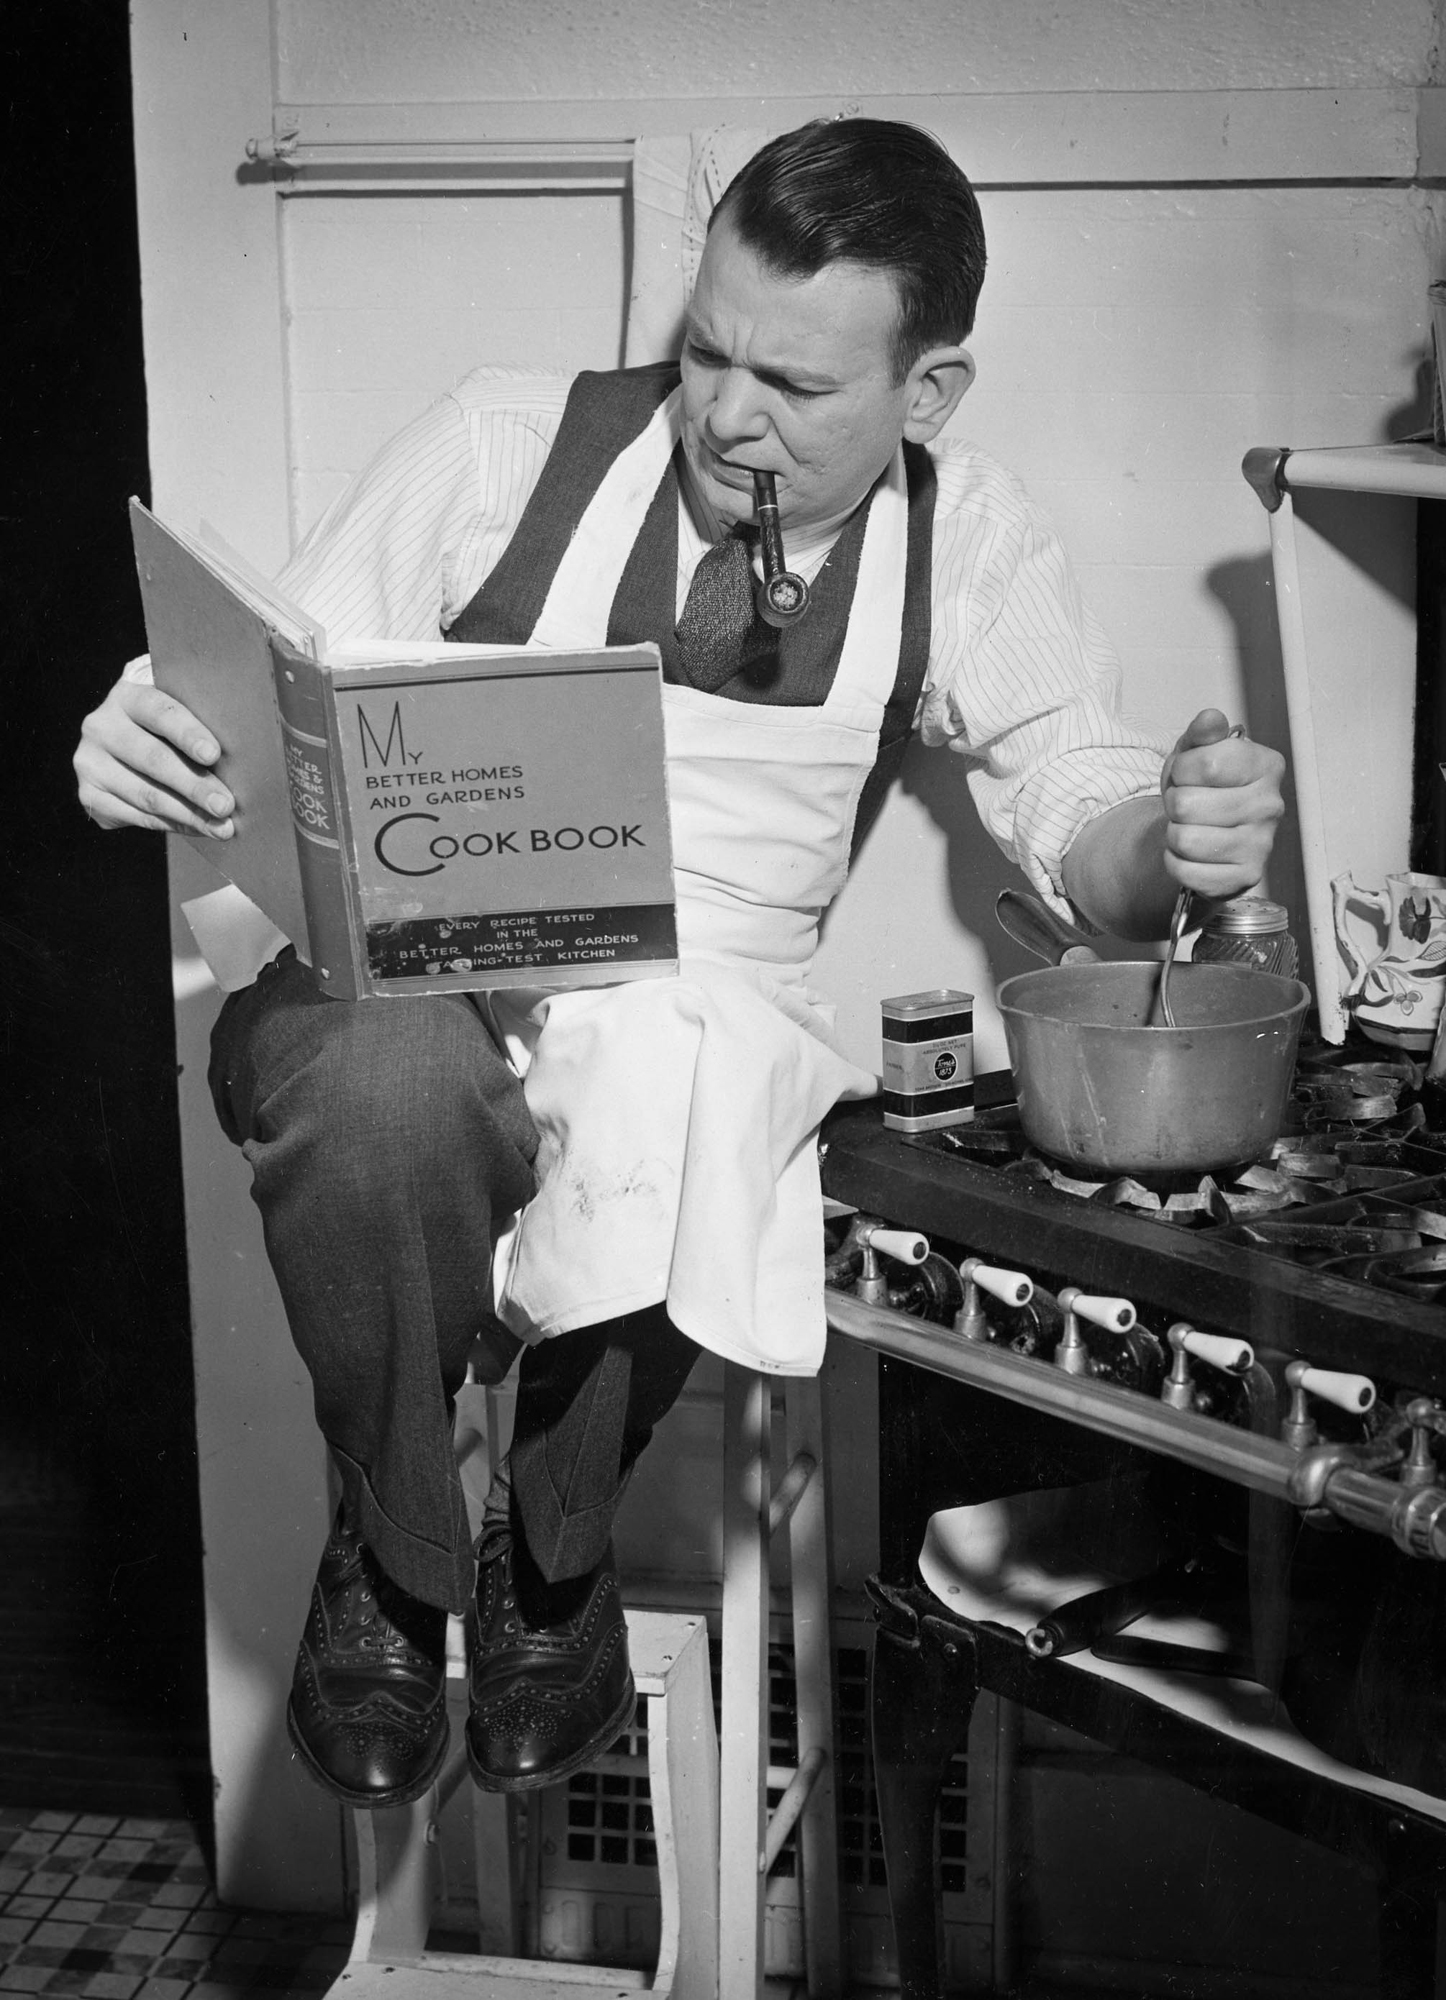 You can't make your house a home without have meals in it ... There's nothing to be scared about in a good cook book. (From original caption in Sept. 18, 1938 Pittsburgh Press.)